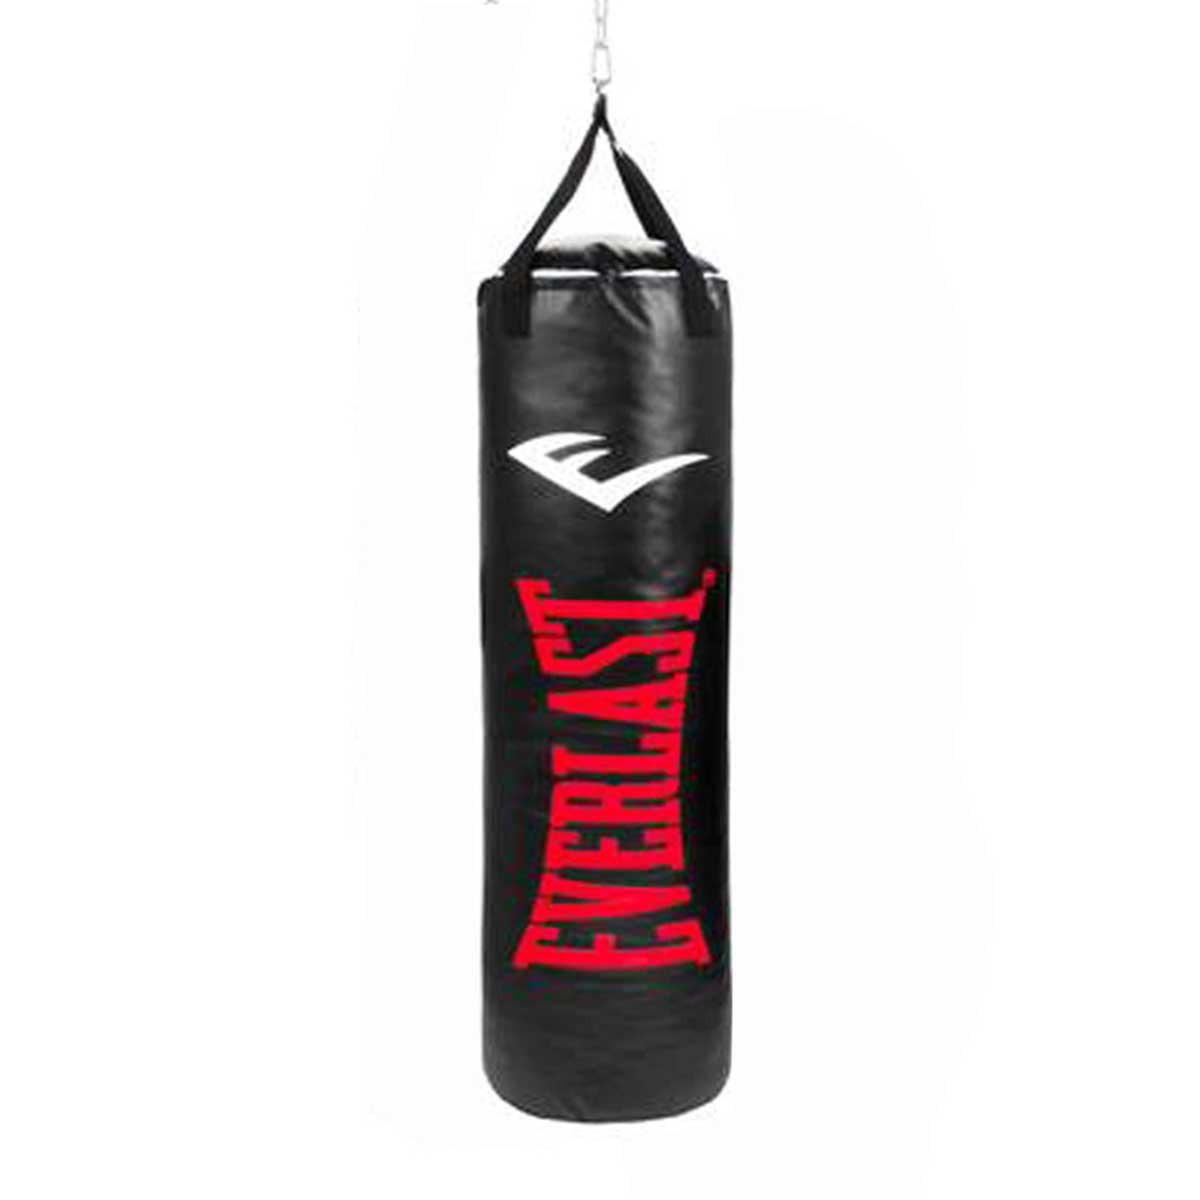 Buy Everlast Nevatear Shell-filled Punching Bag (13x40, Black/Red) Online India